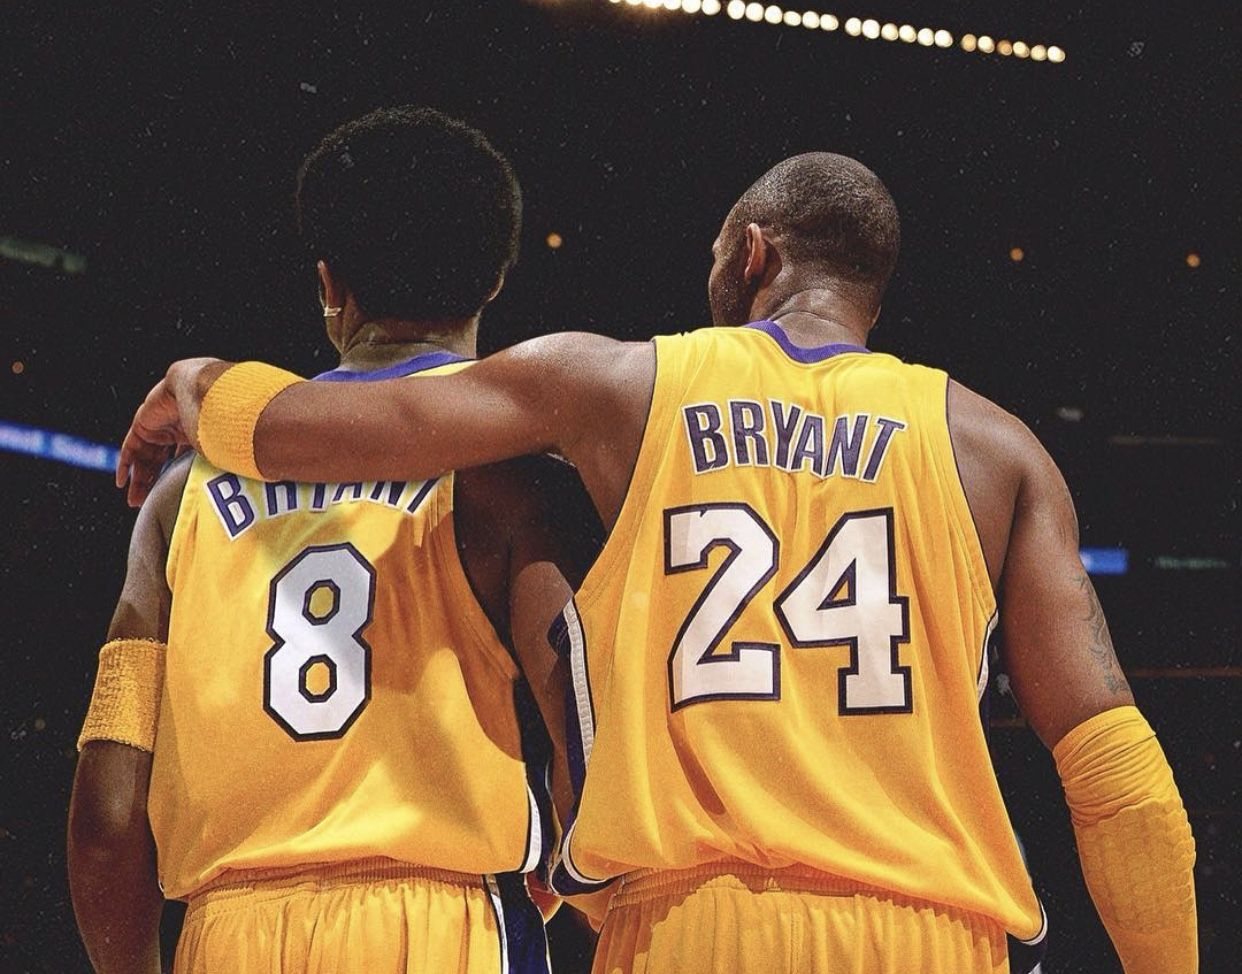 Pin by Nicholas Ihling on Kobe Bryant and fam in 2020